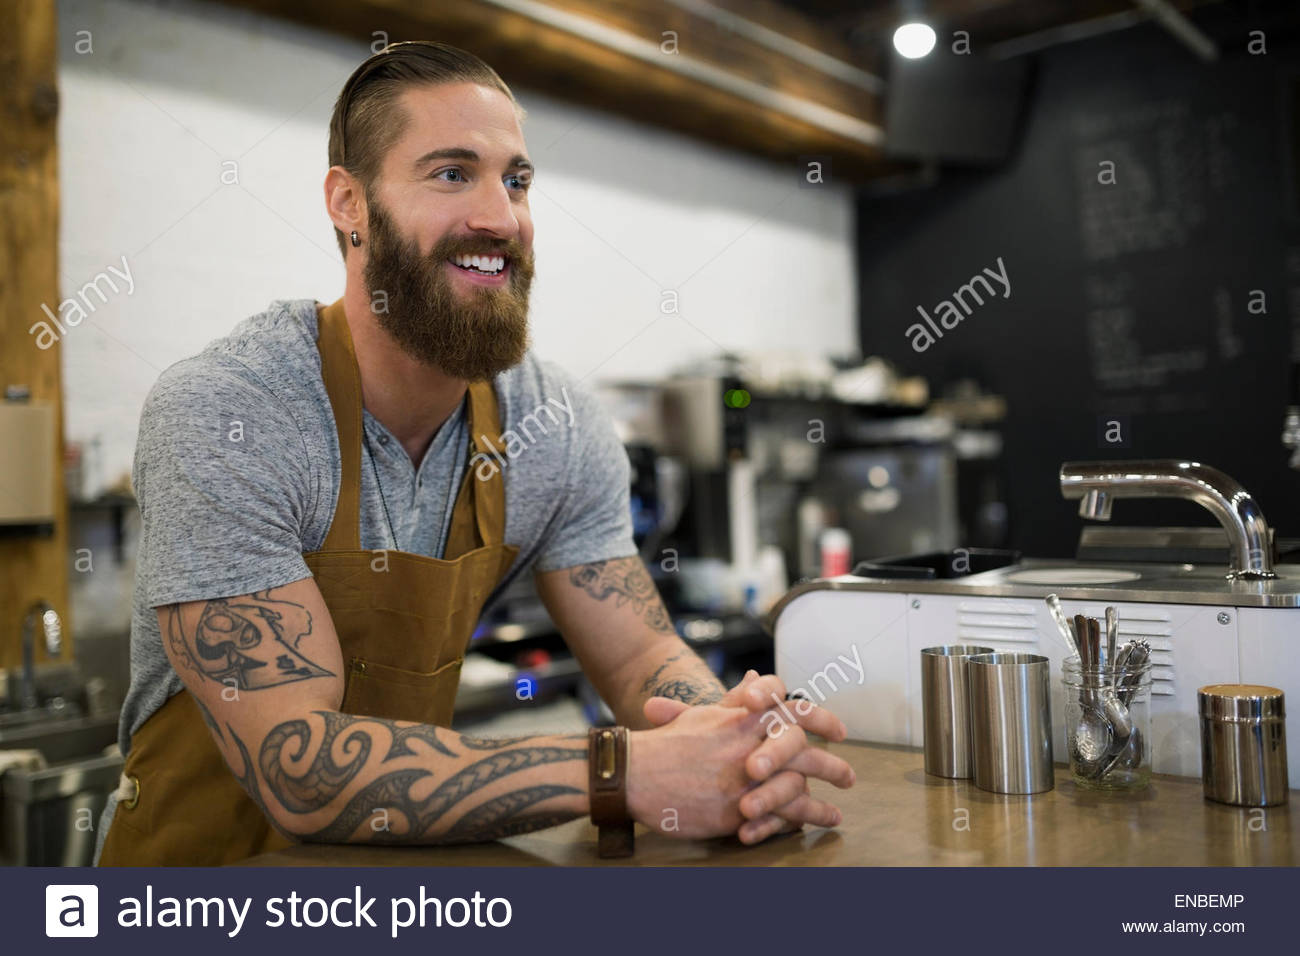 "Literally the stock photo that came up in a Google search of the word ""hipster""."